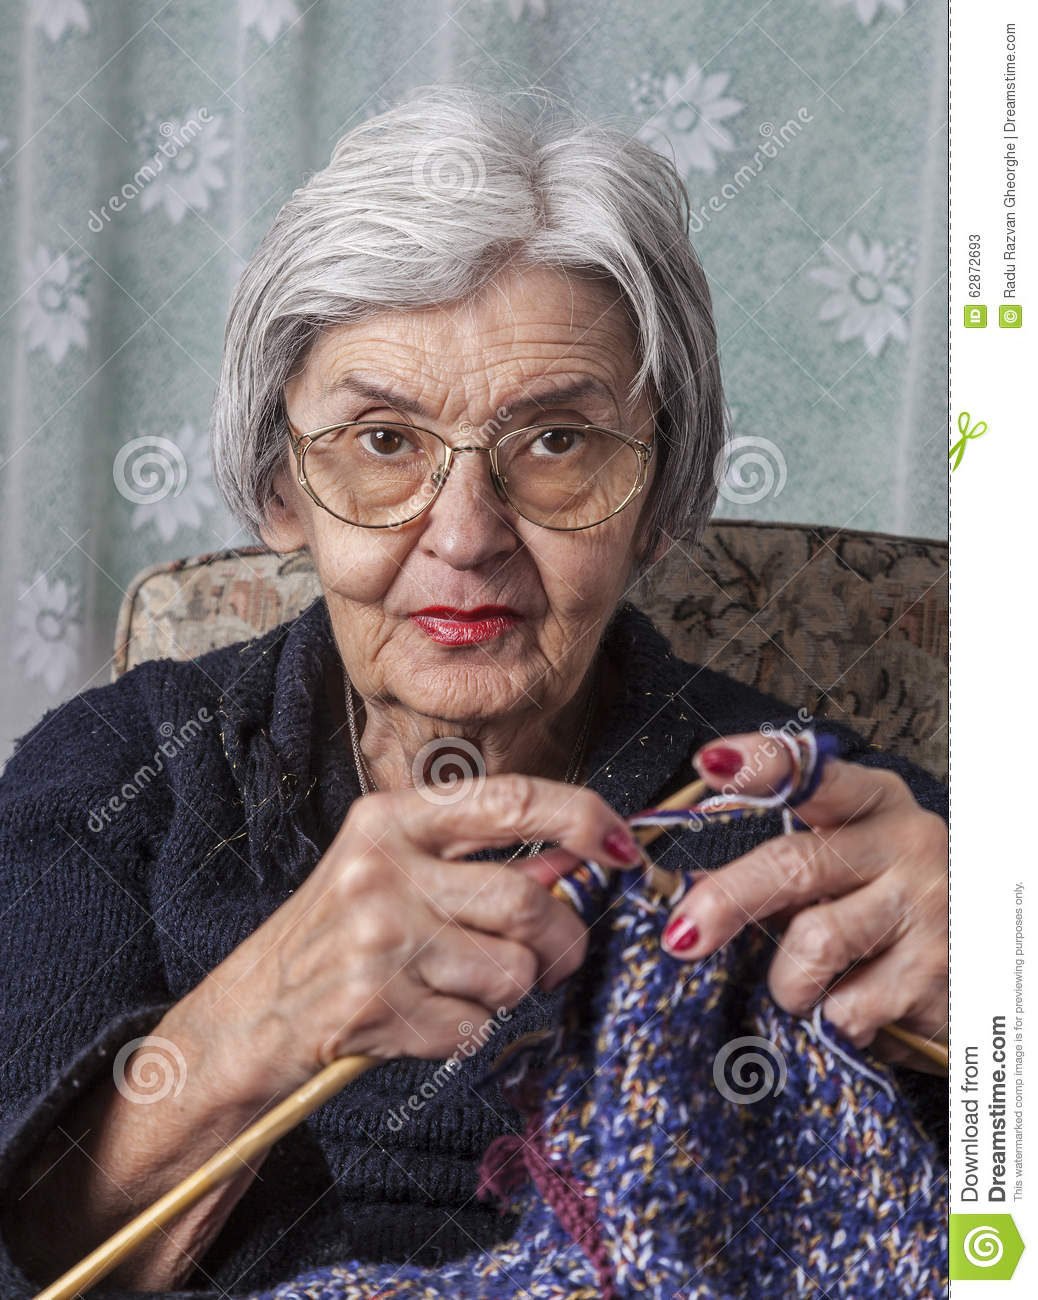 Old Knitting Woman : Portrait of an old woman knitting stock photo image